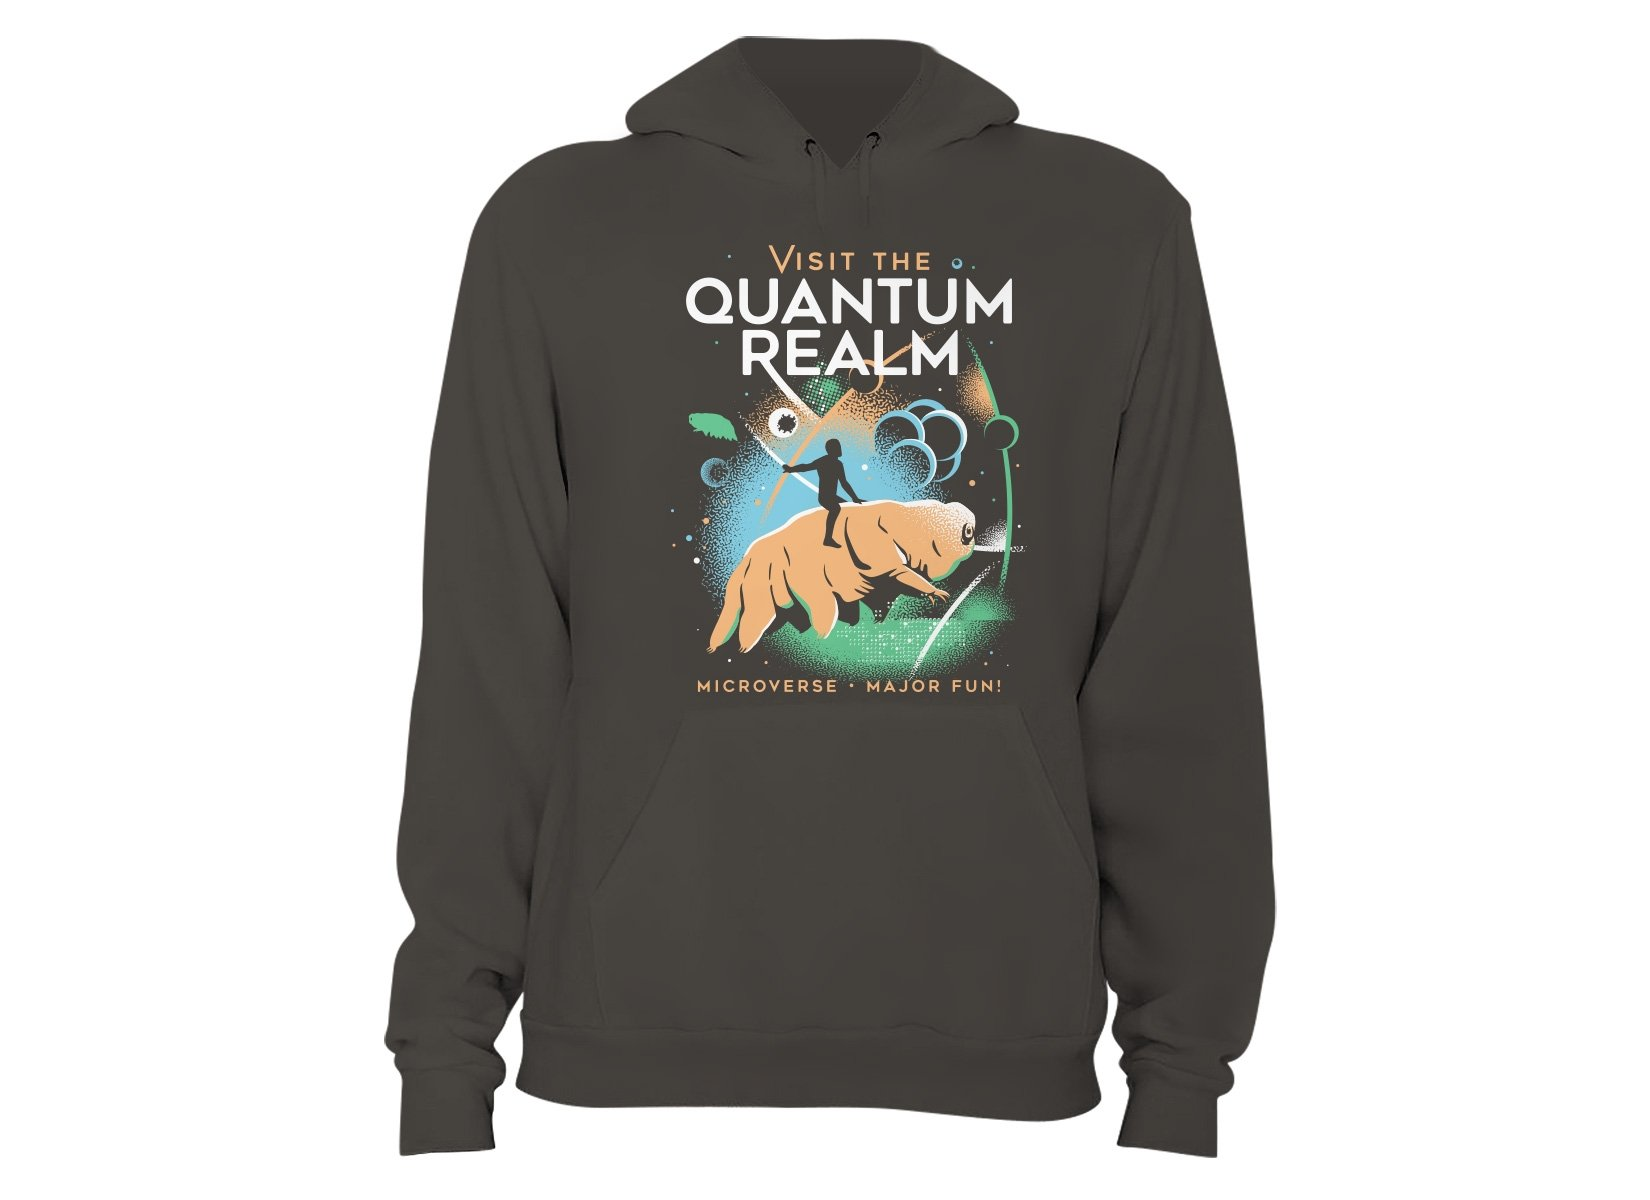 Visit The Quantum Realm on Hoodie